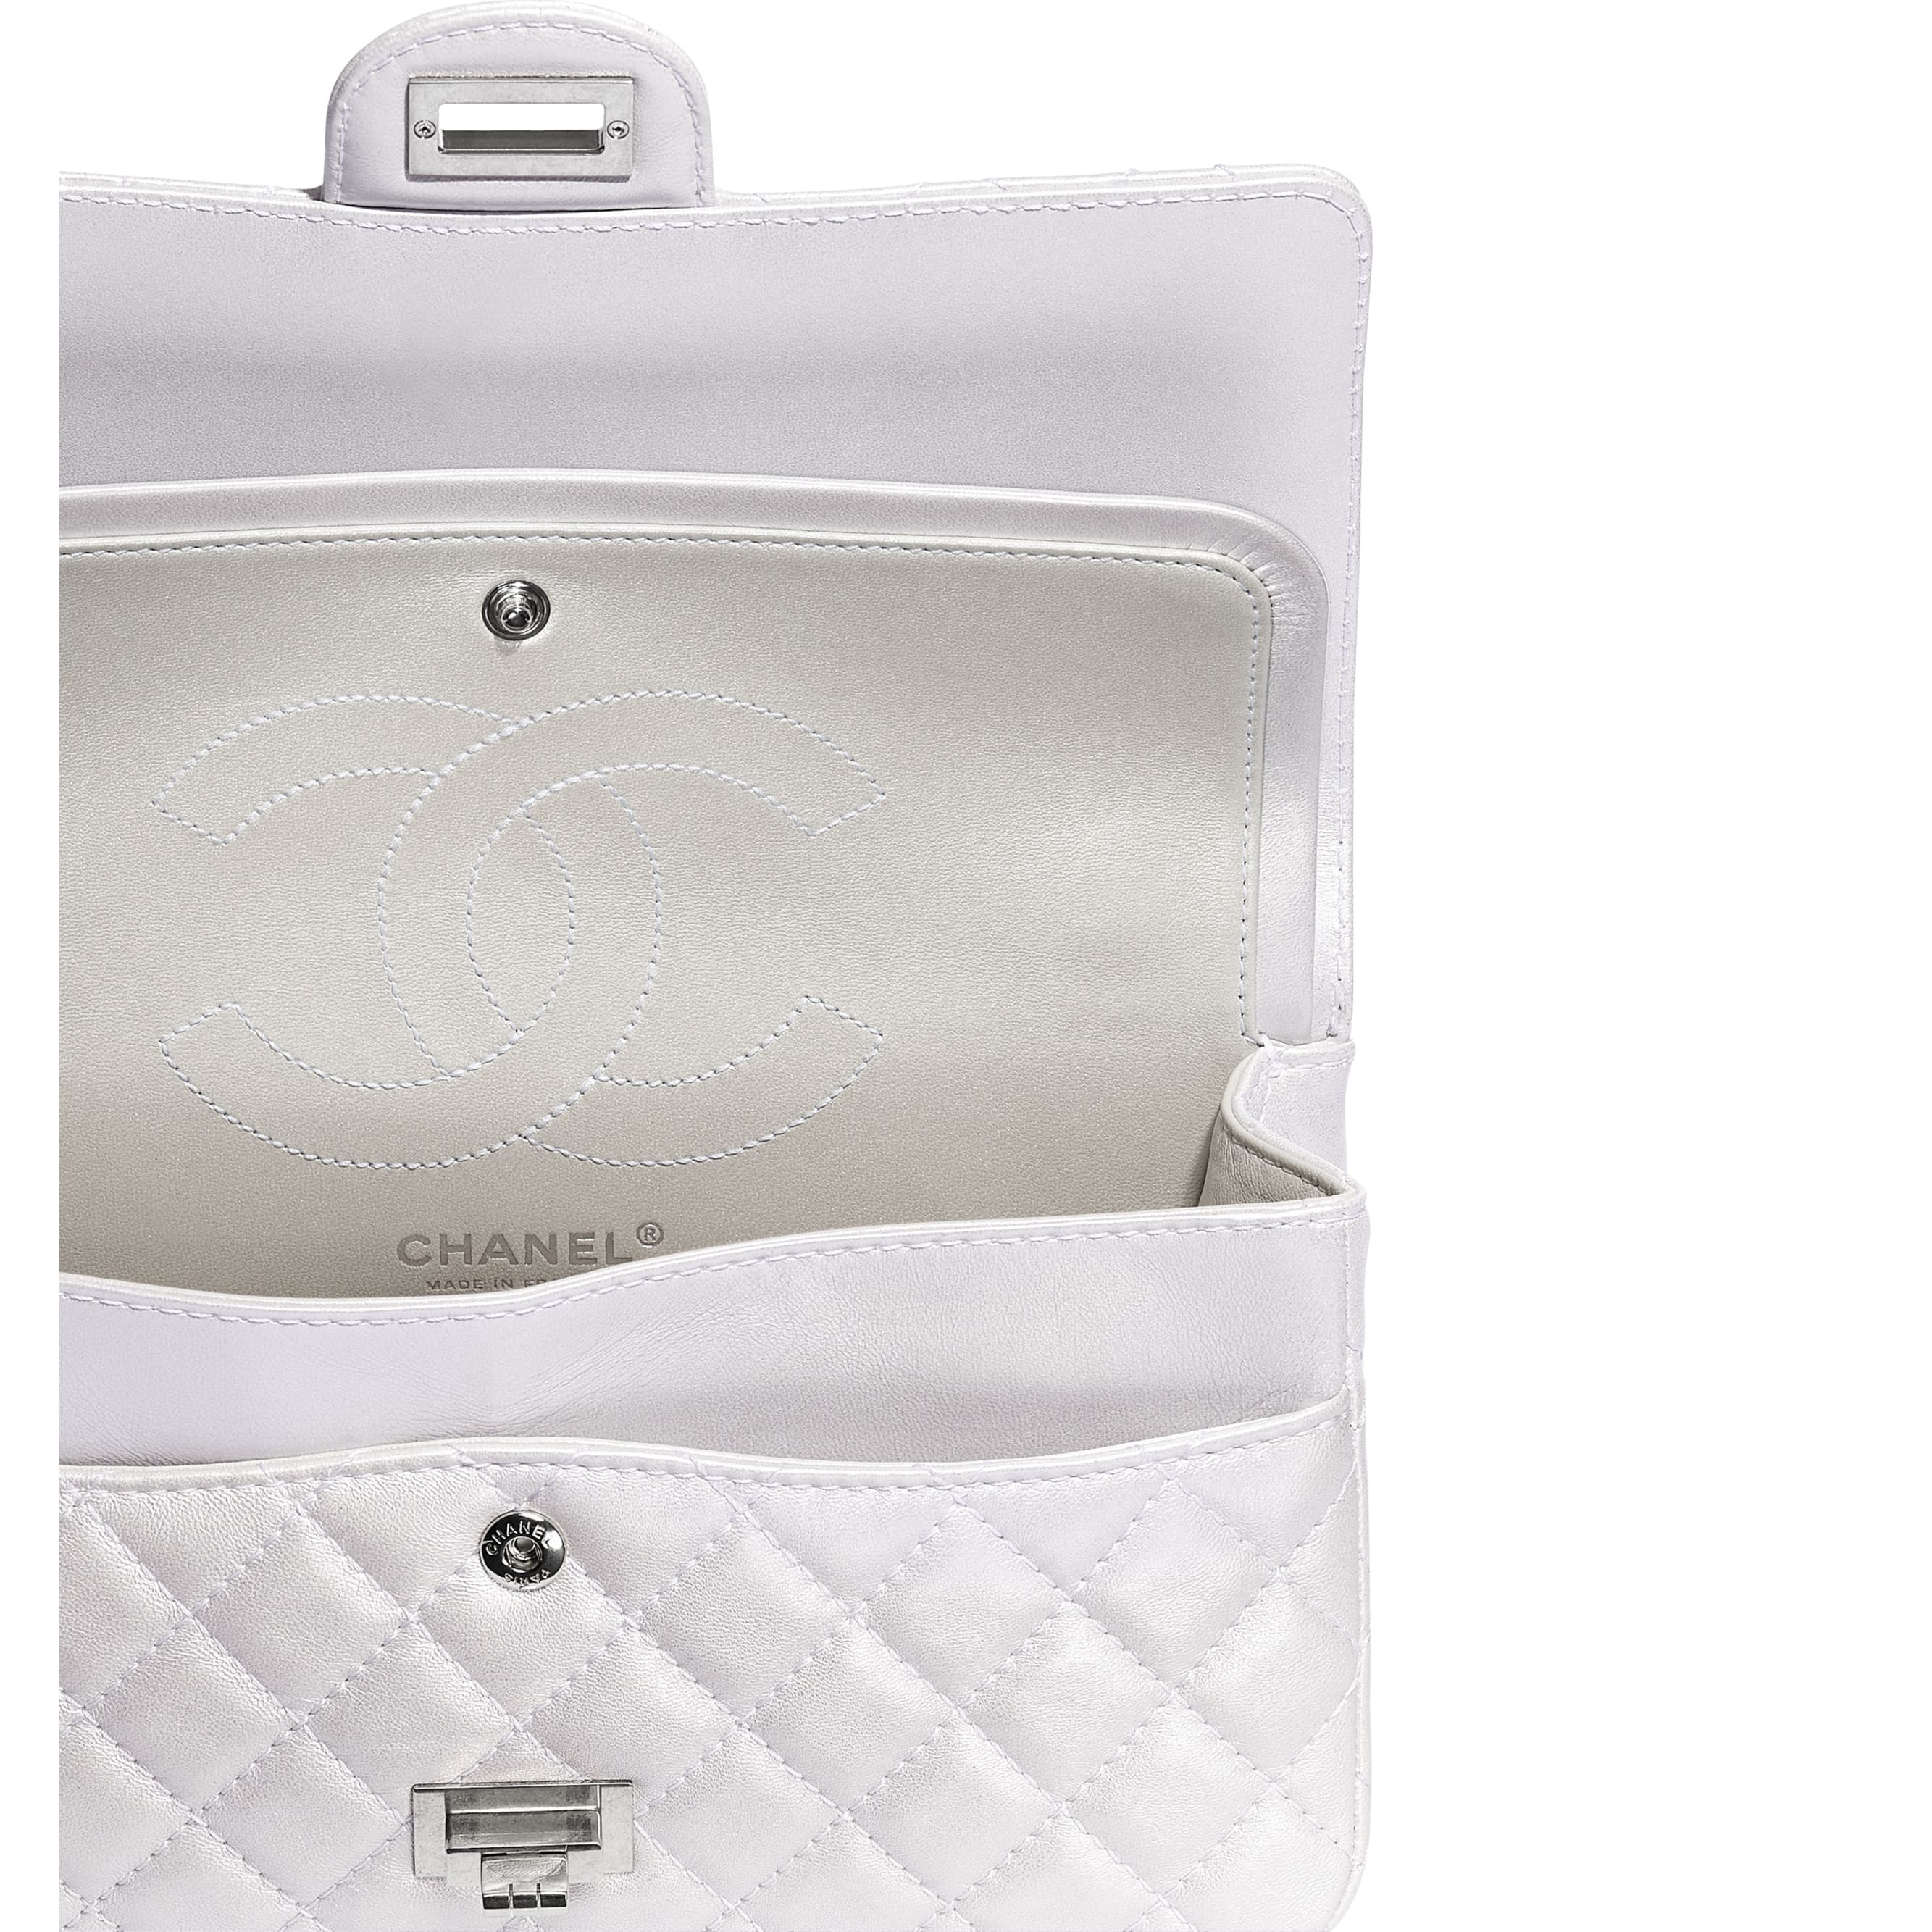 2.55 Handbag - White - Iridescent Lambskin & Silver-Tone Metal - CHANEL - Extra view - see standard sized version